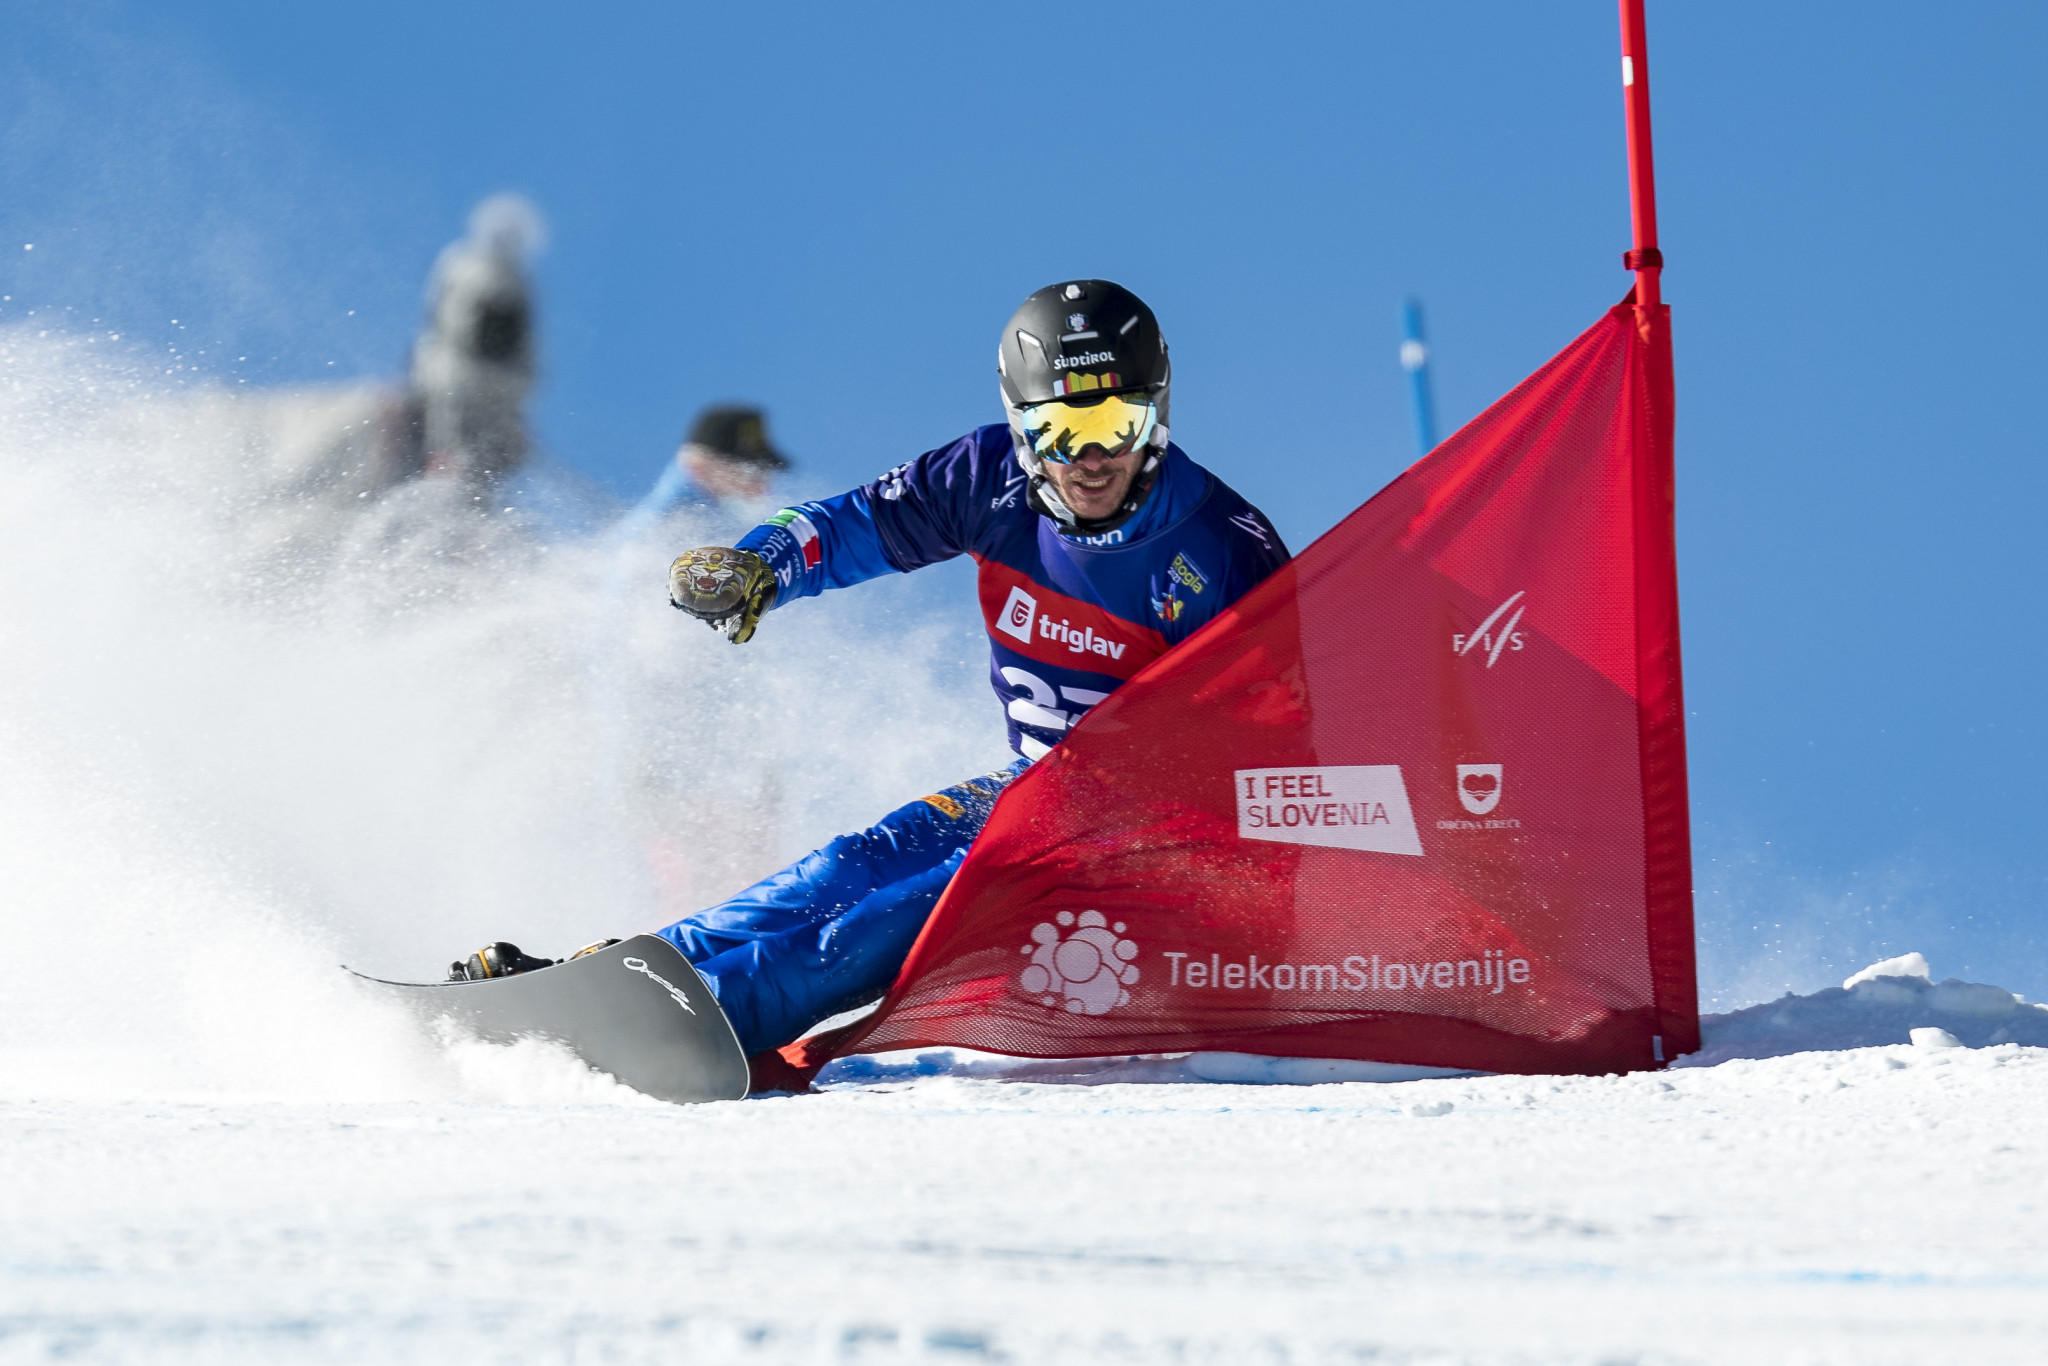 FIS Snowboard Alpine Sub Committee to press for parallel slalom being added to Milan Cortina 2026 programme